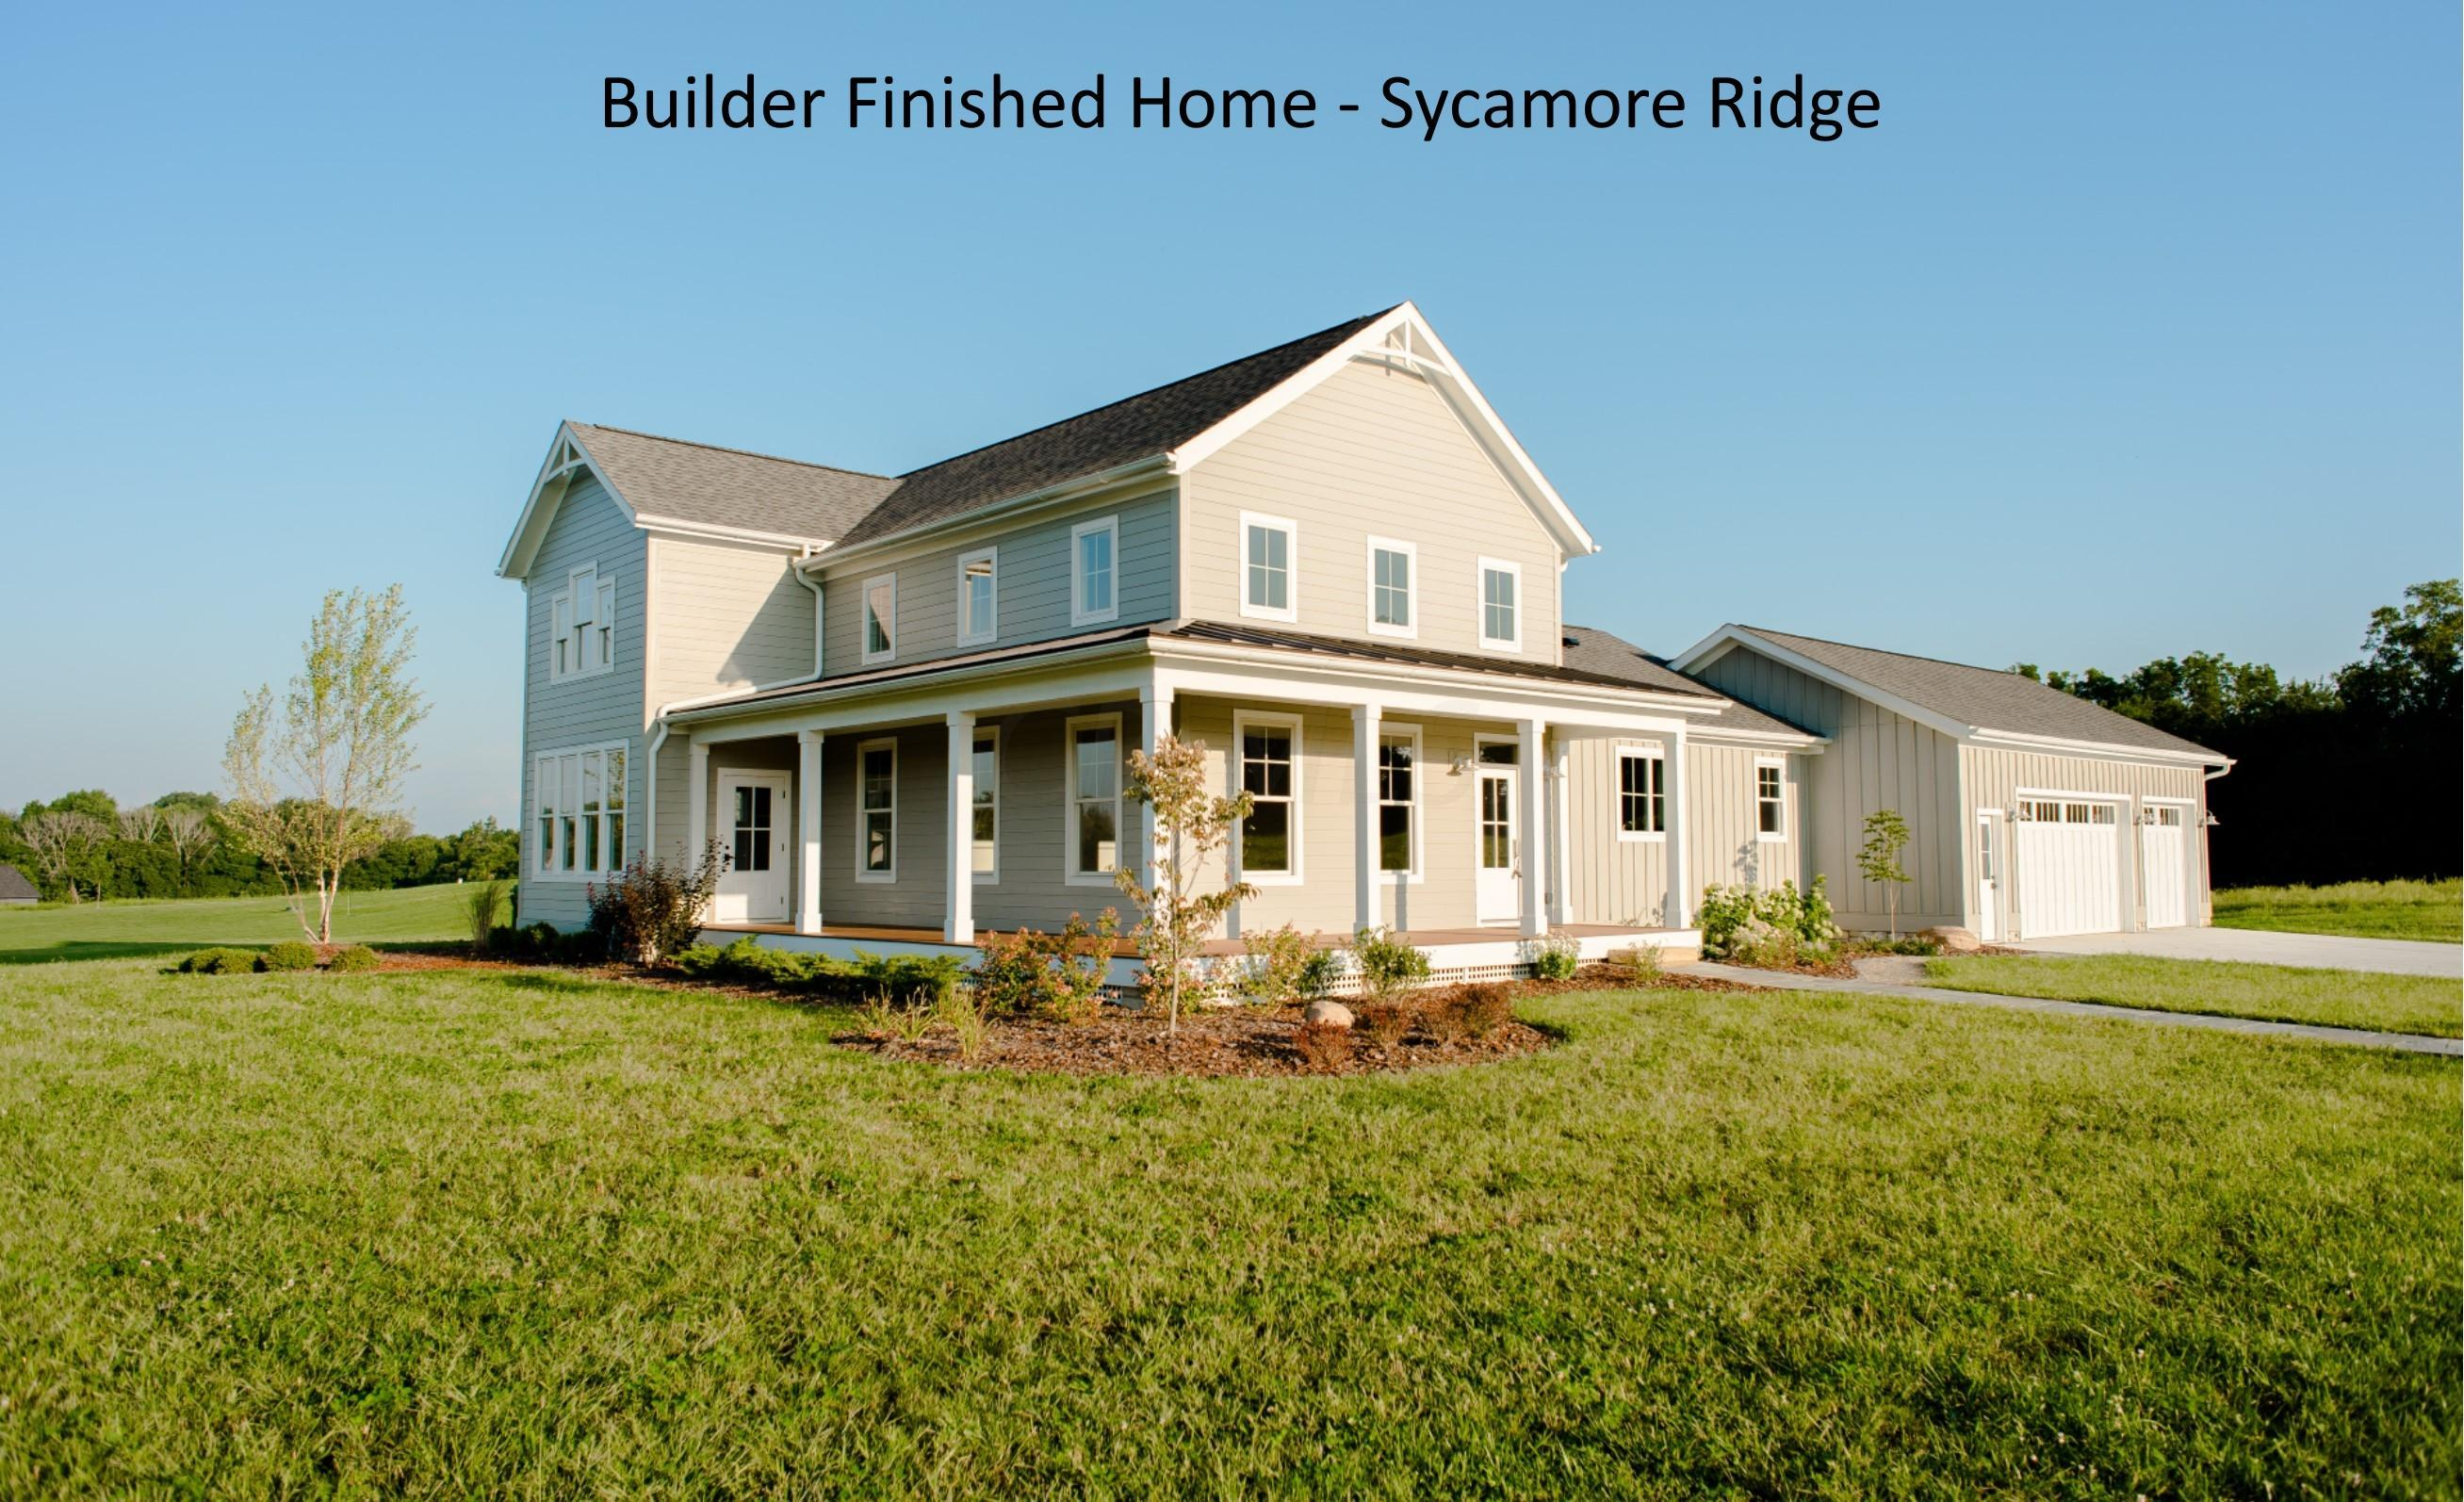 Sycamore Ridge Home